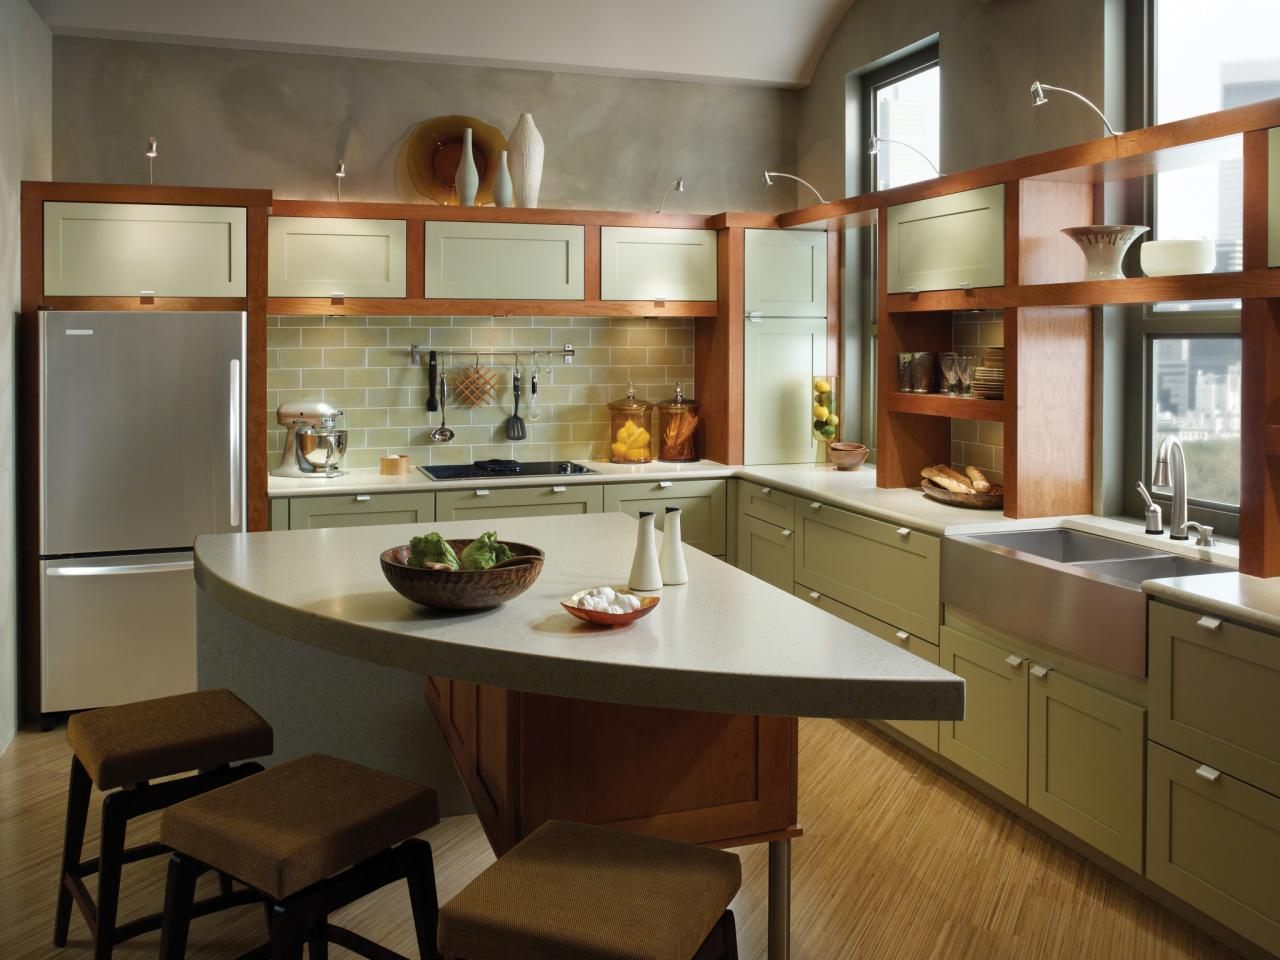 Quickest Way To Paint Kitchen Cabinets Options For Painting A Kitchen Pictures And Ideas From Hgtv